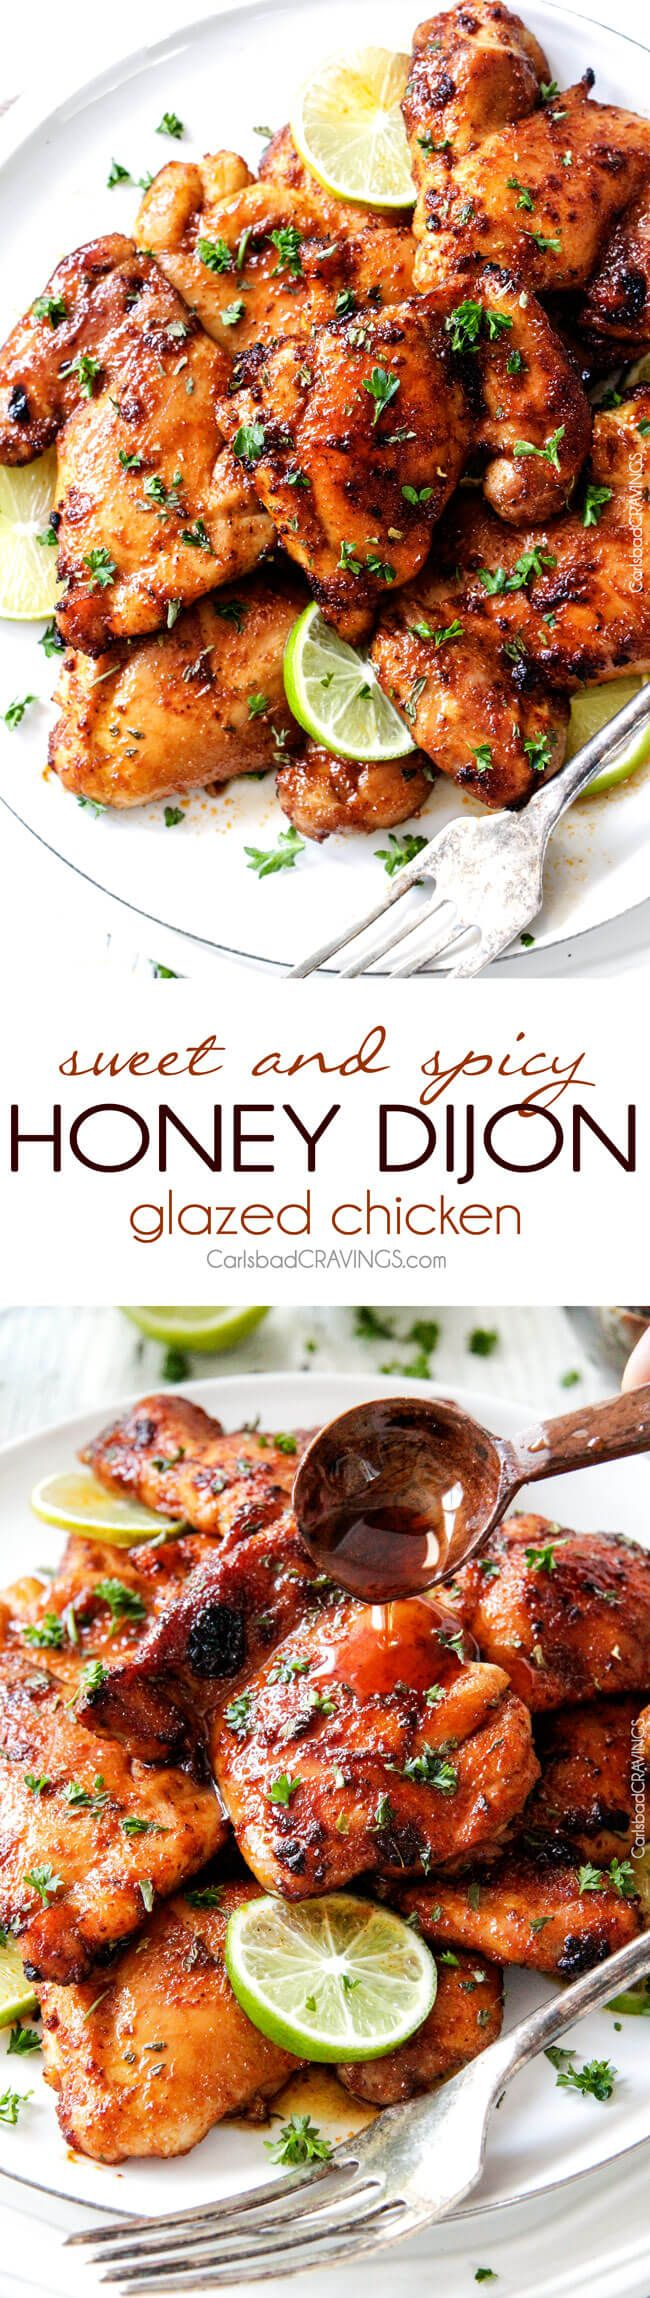 Sweet, Spicy and Tangy Honey Dijon Glazed Chicken is quick and easy and packed with flavor! The chicken thighs are rubbed in spices, cooked under the broiler for 10 minutes and glazed with the most incredible sauce! via @carlsbadcraving